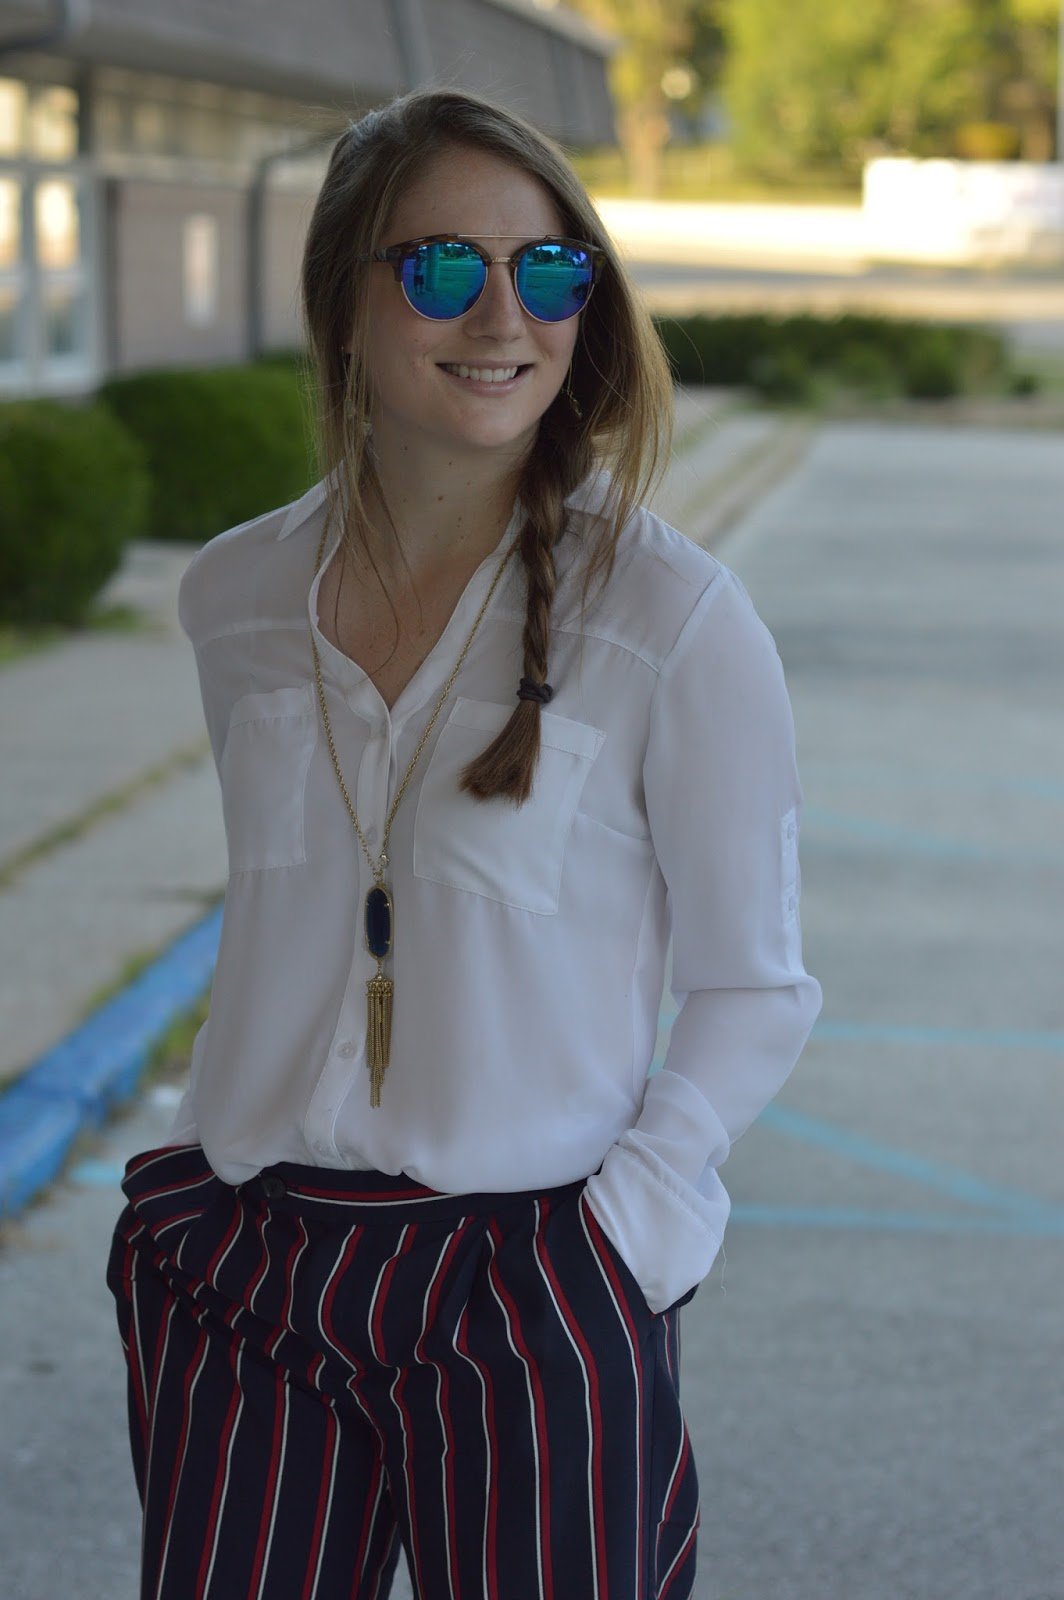 work outfit ideas | striped dress pants outfit ideas | a memory of us | what to pair with a white blouse | outfits for work with an express portofino blouse | kansas city fashion blog |